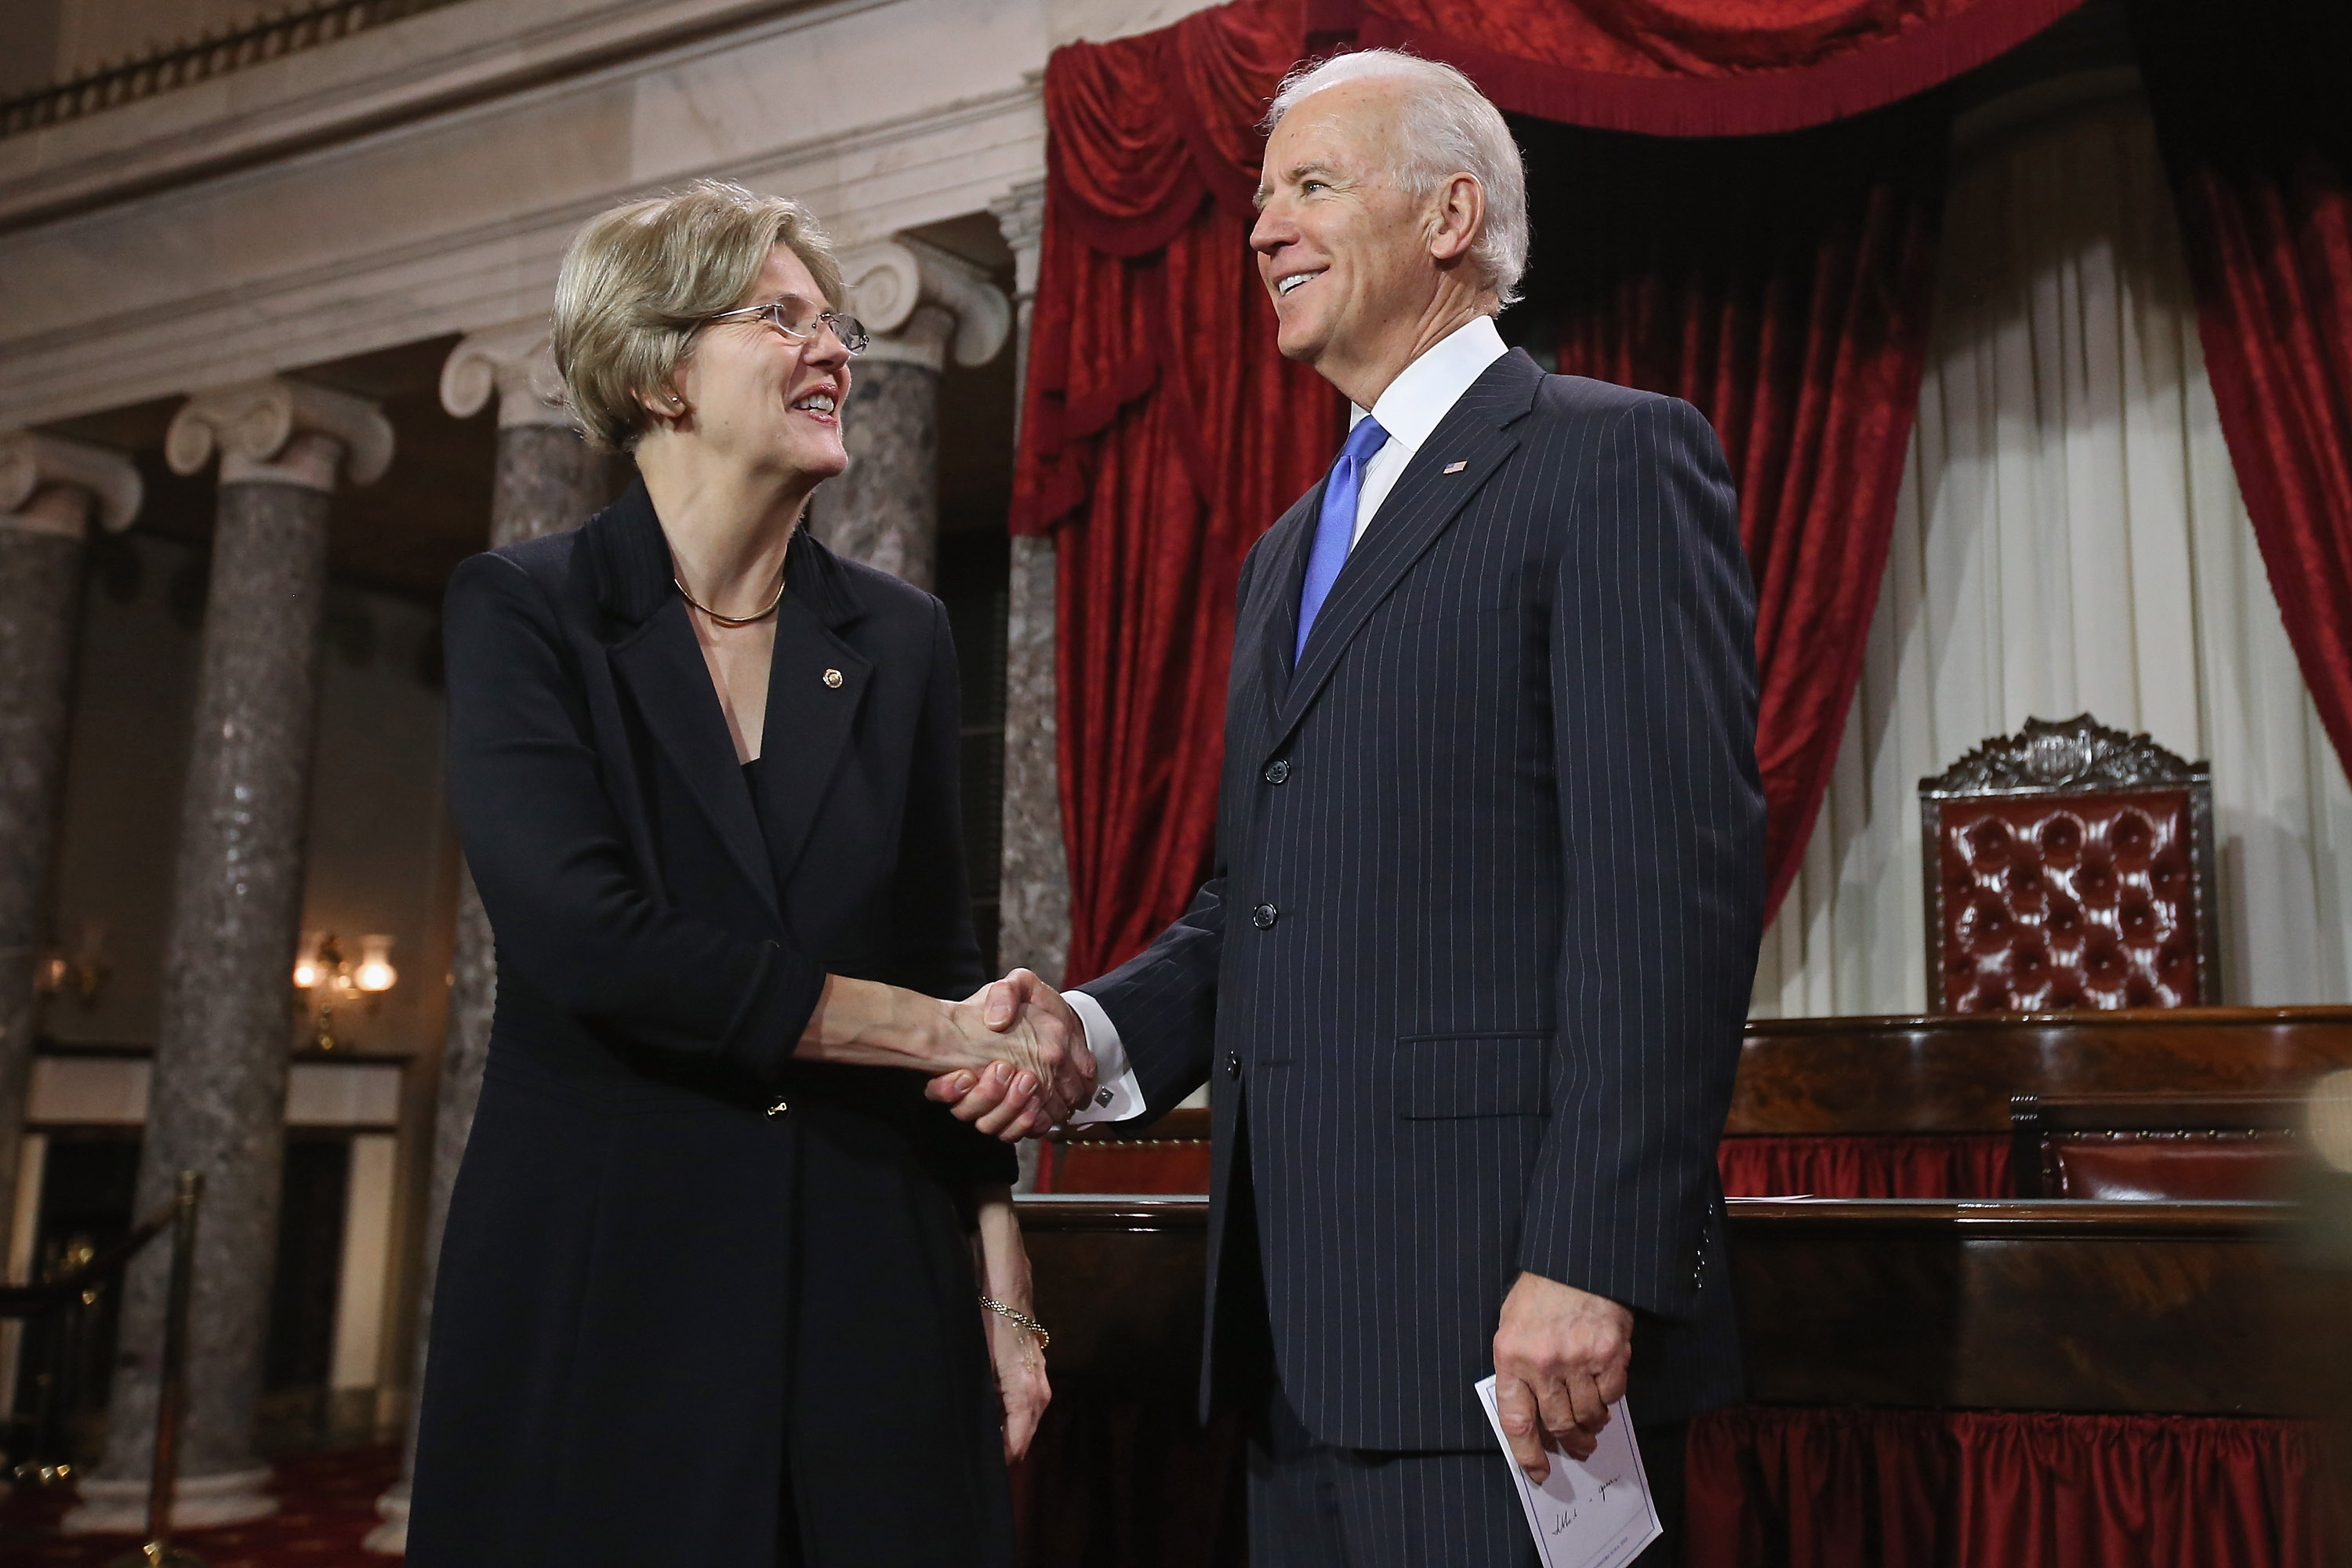 WASHINGTON, DC - JANUARY 03: U.S. Sen. Elizabeth Warren (D-MA) (L) participates in a reenacted swearing-in with U.S. Vice President Joe Biden in the Old Senate Chamber at the U.S. Capitol January 3, 2013 in Washington, DC. Biden swore in the newly-elected and re-elected senators earlier in the day on the floor of the current Senate chamber. (Photo by Chip Somodevilla/Getty Images)